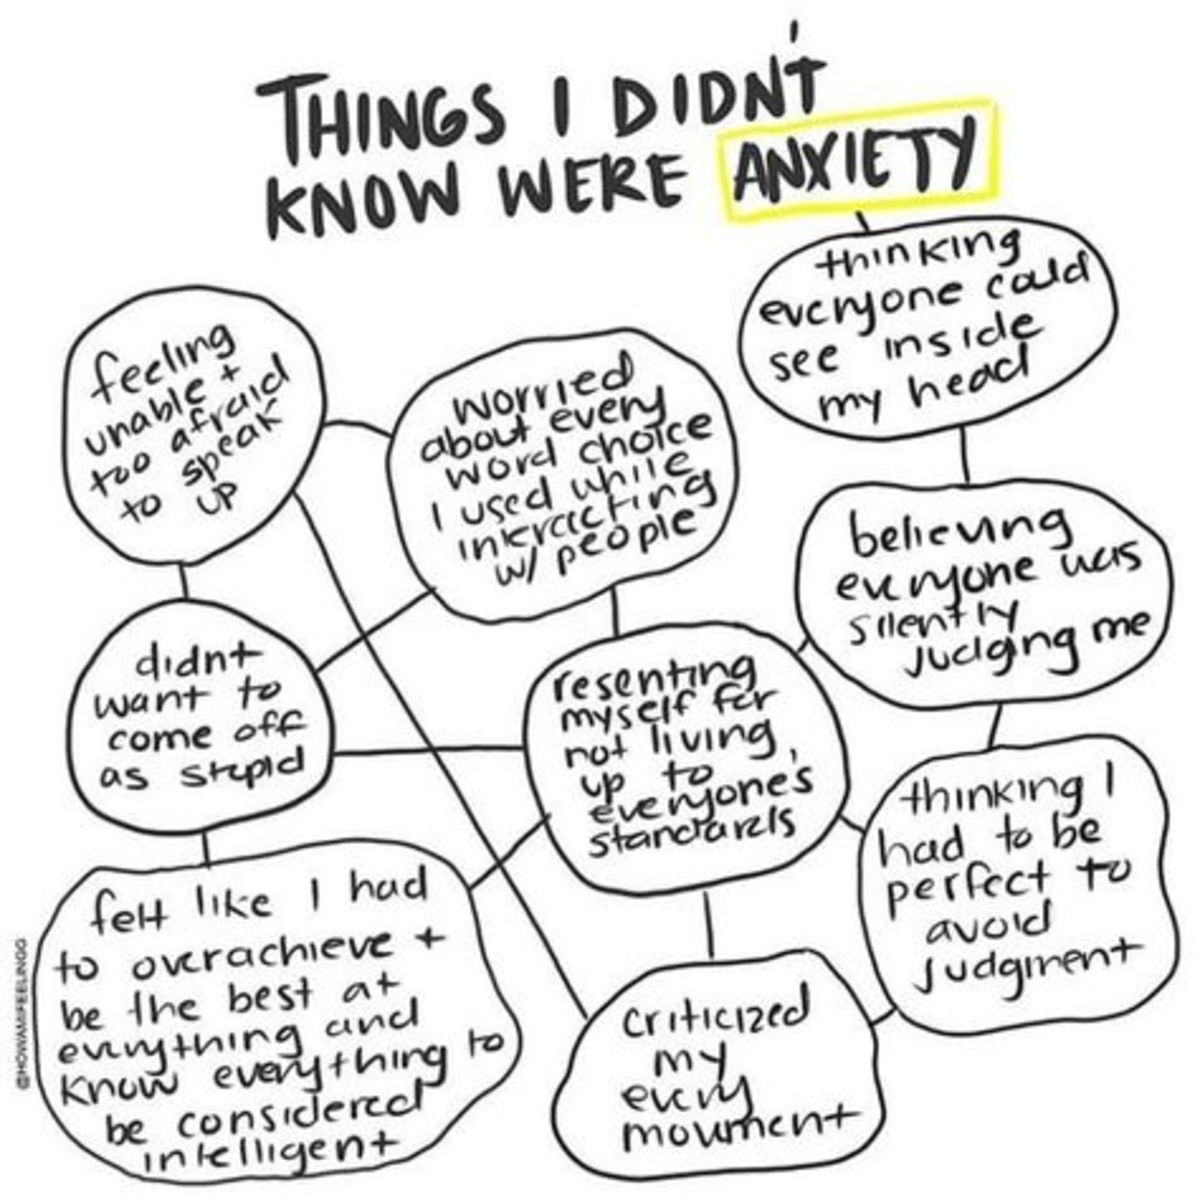 how-to-deal-with-and-let-go-of-anxiety